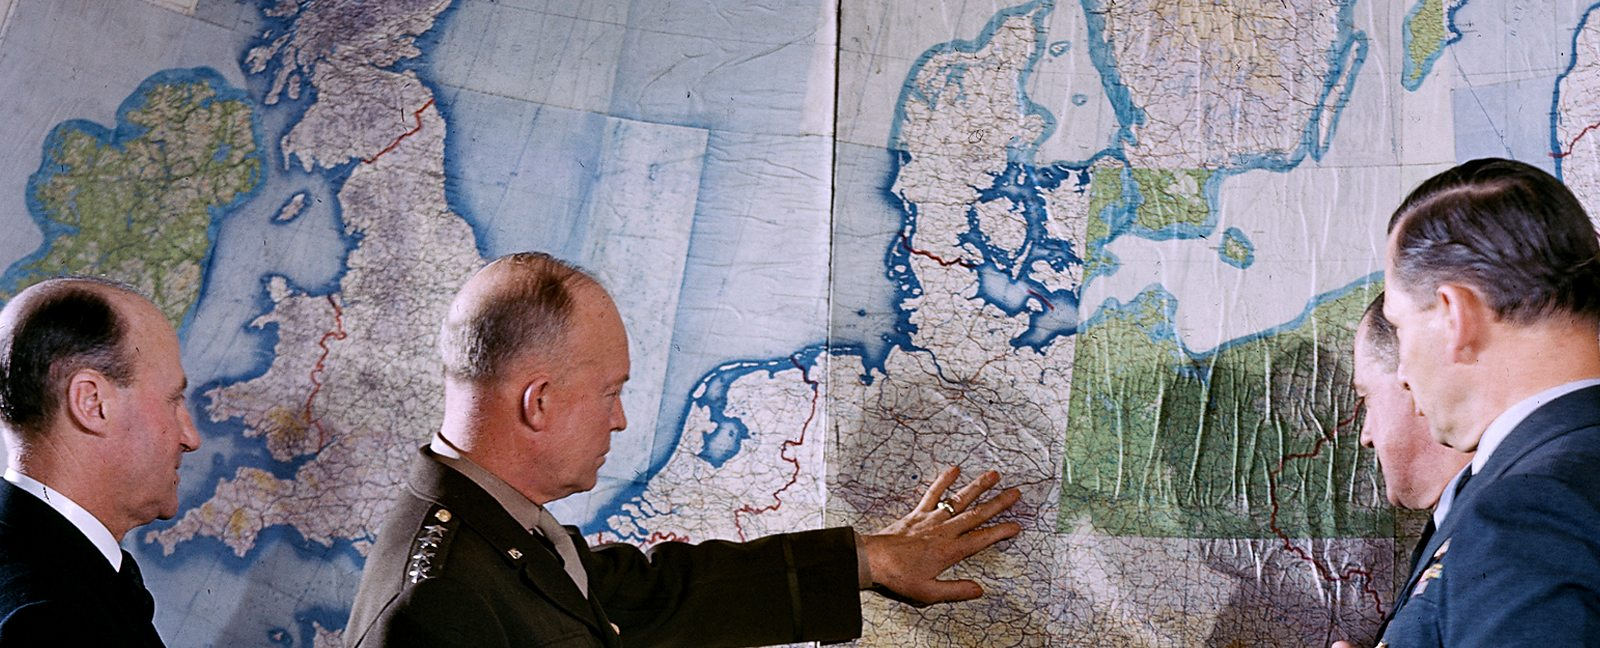 What did Canadians do to help win D-day?